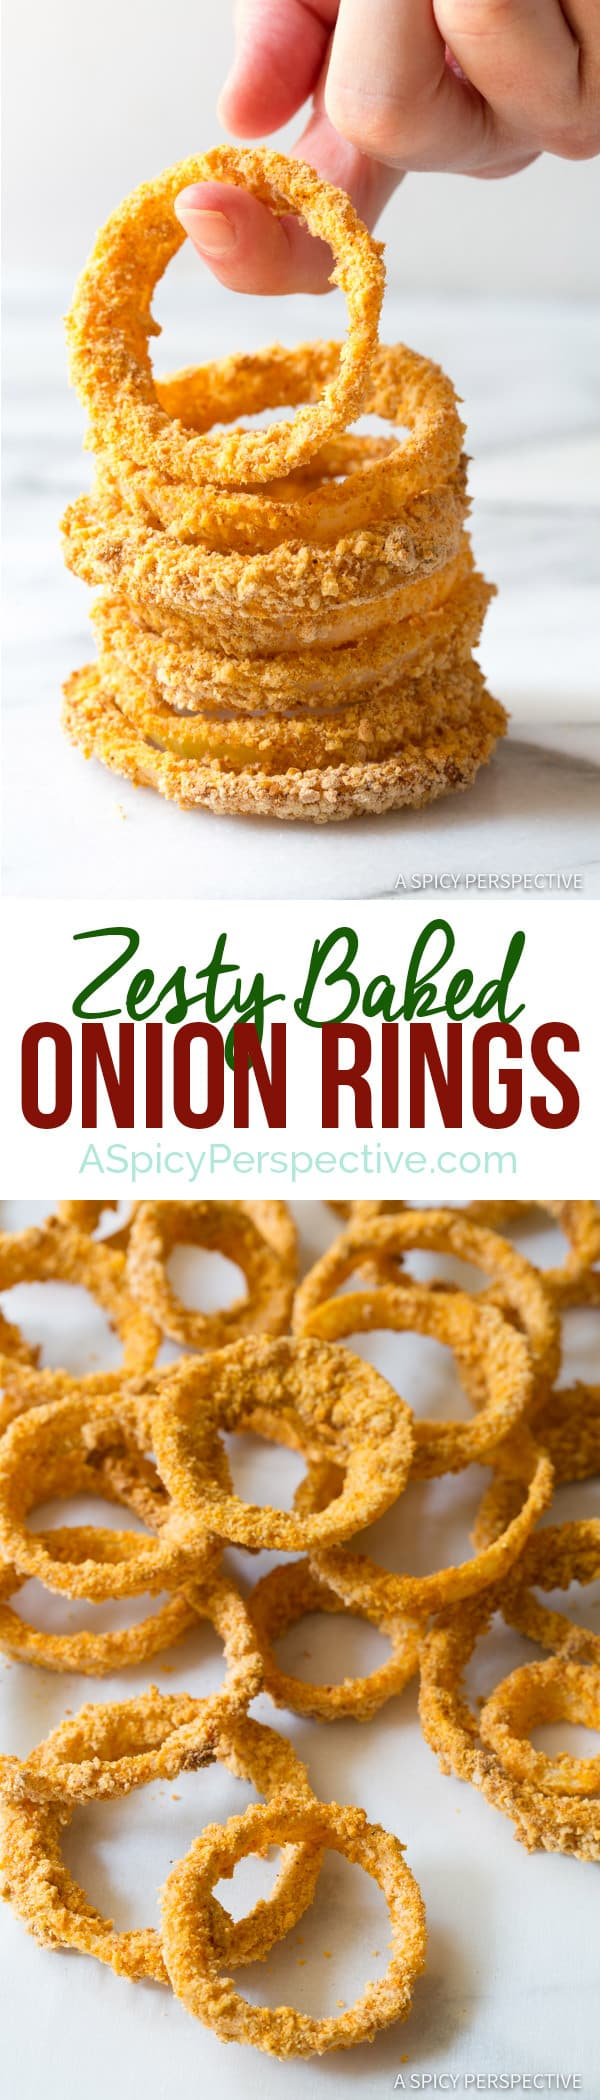 Crisp Zesty Baked Onion Rings Recipe | ASpicyPerspective.com